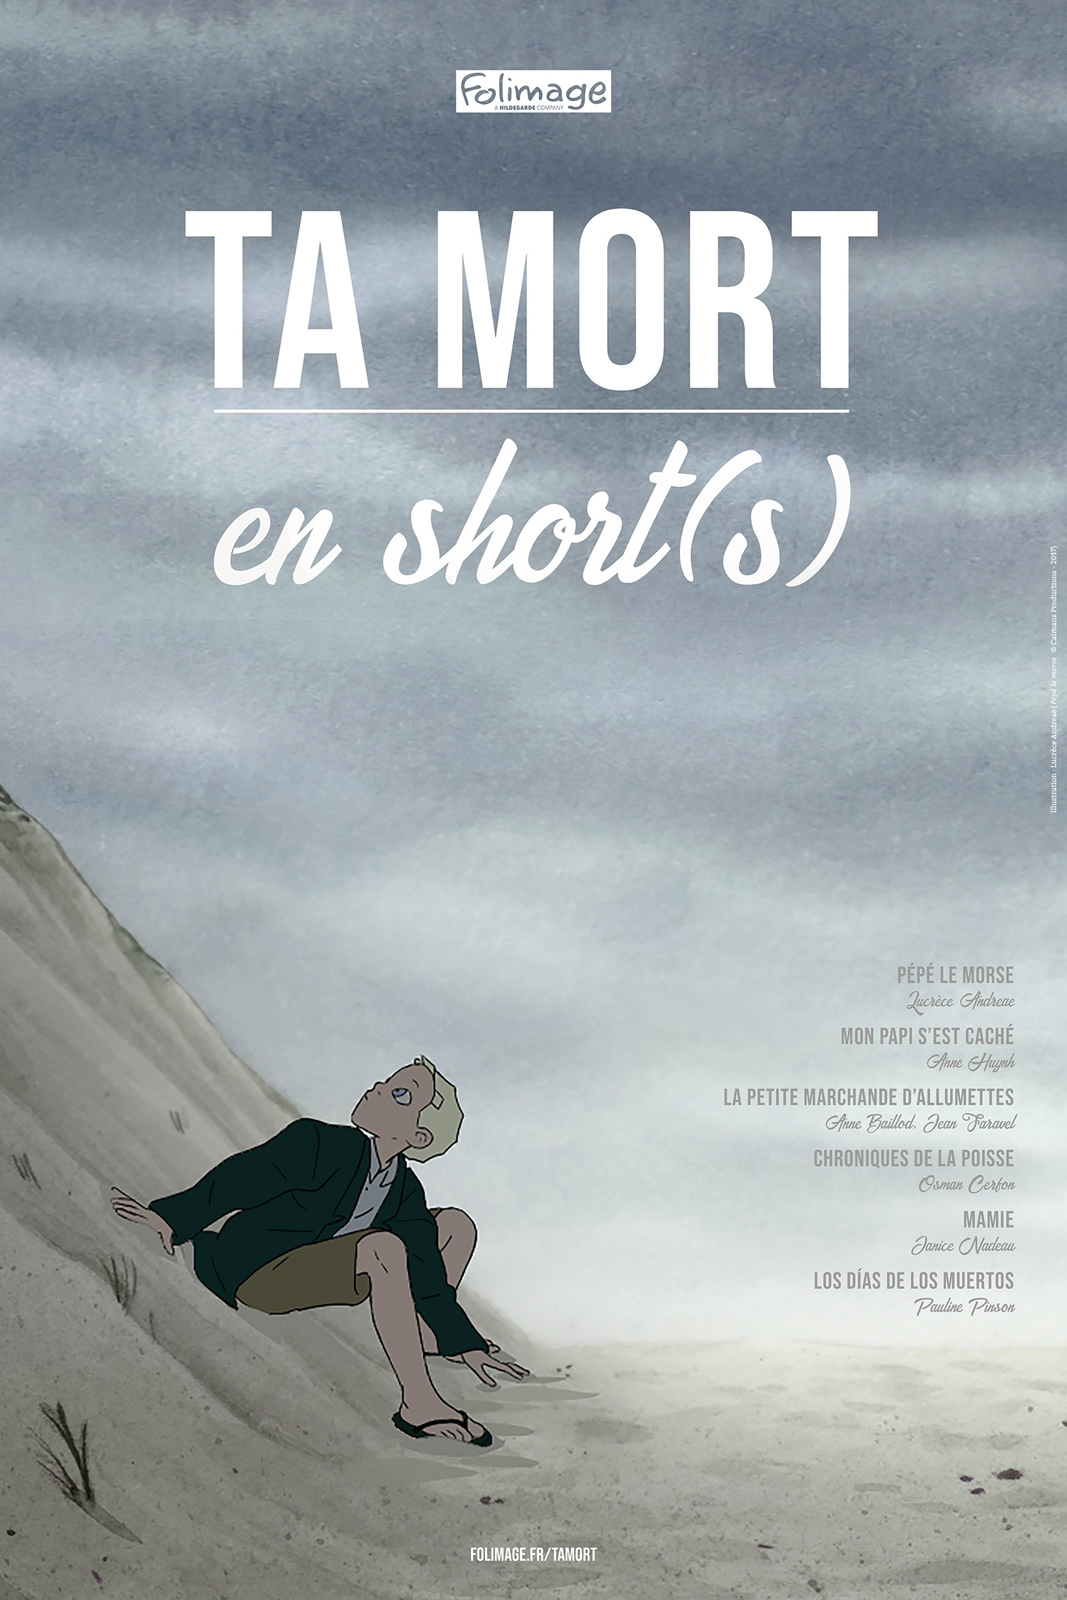 Ta mort en short(s) streaming